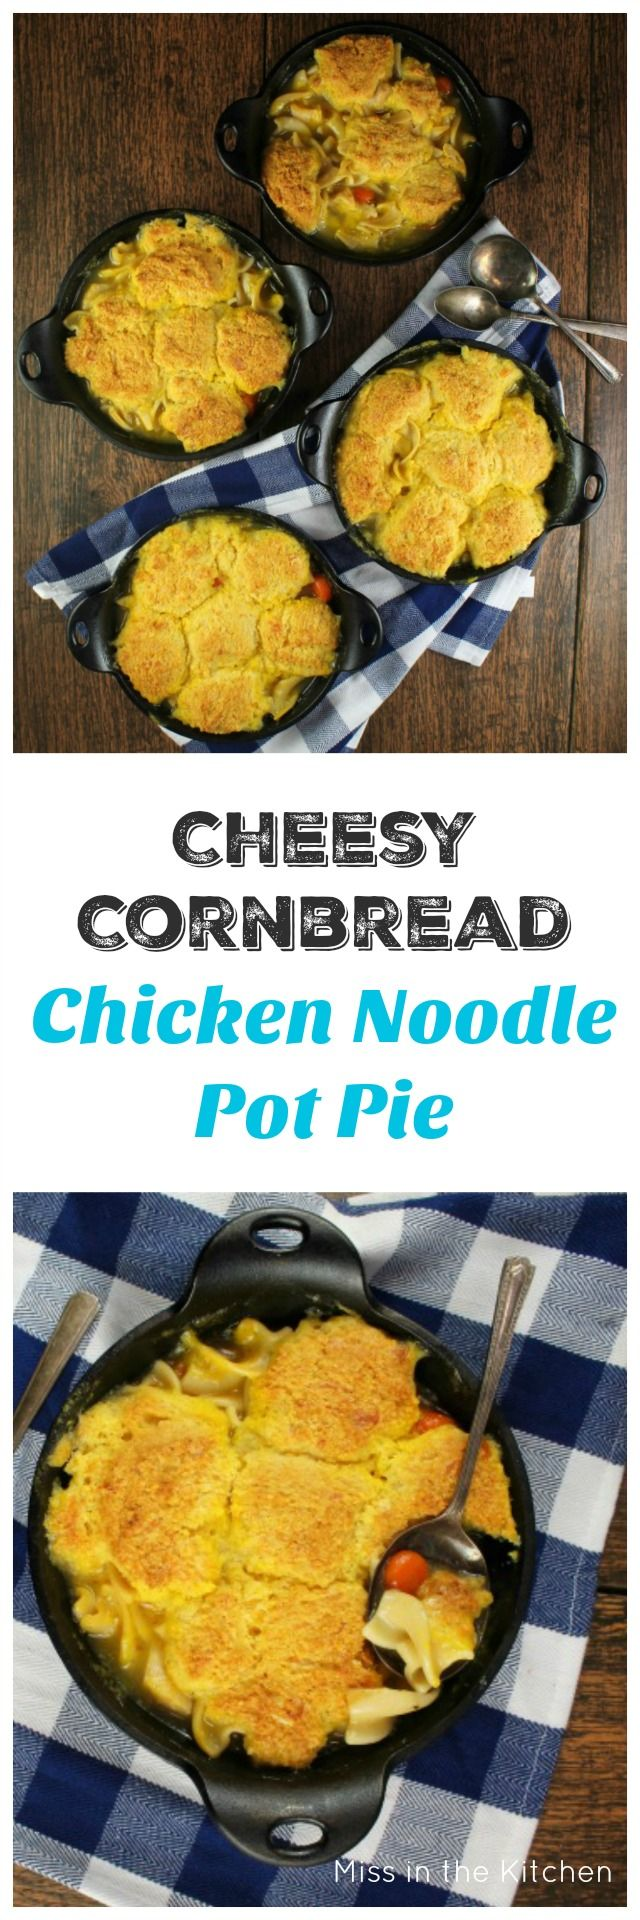 Cheesy Cornbread Chicken Noodle Pot Pie is the ultimate comfort food that comes together so quick and easy for a filling and delicious dinner that the whole family will love! From MissintheKitchen.com @Walmart #ad #qualityingredients